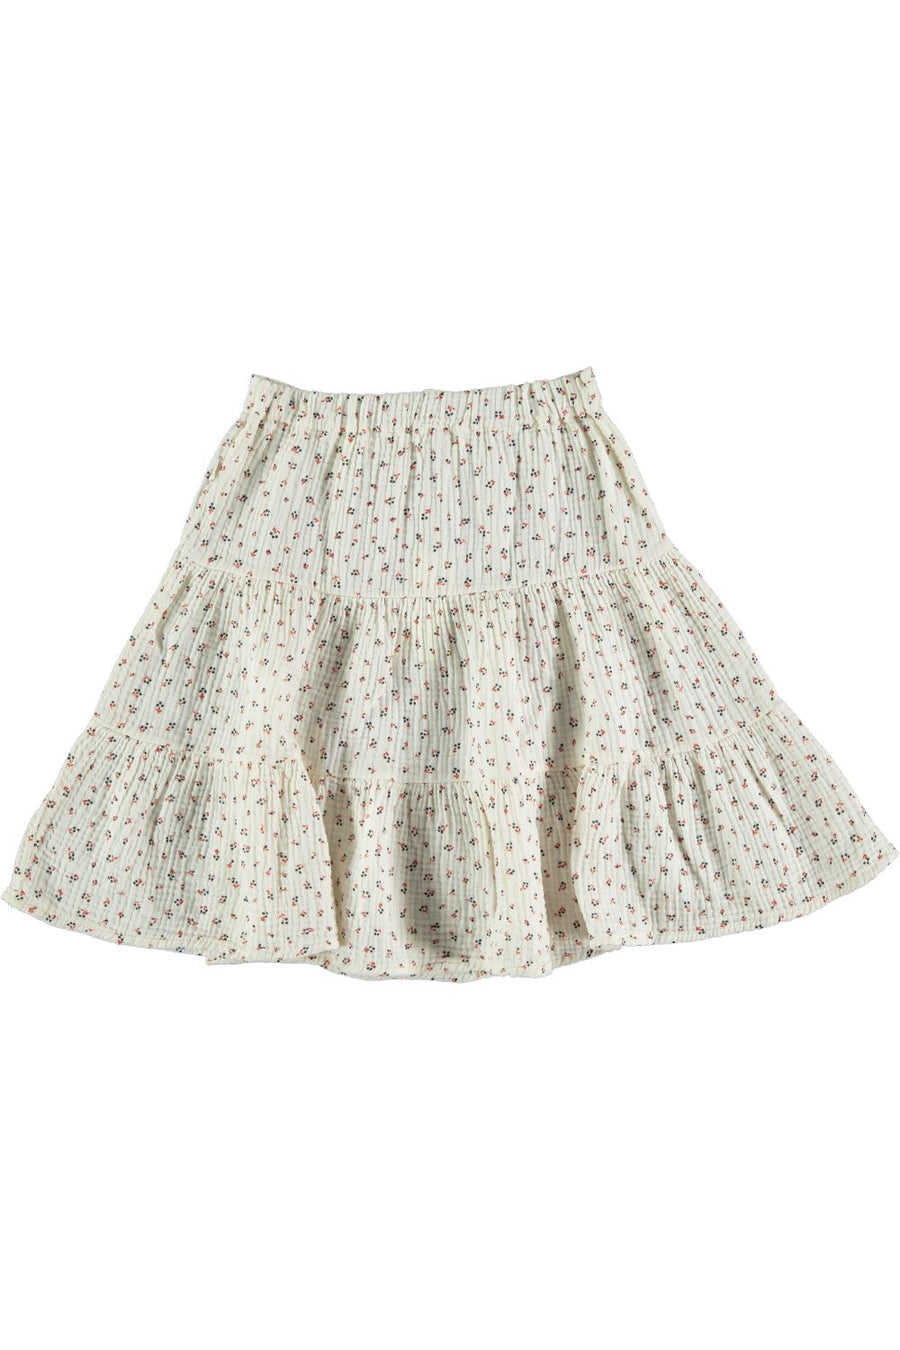 ORGANIC LIBERTY TIERED SKIRT